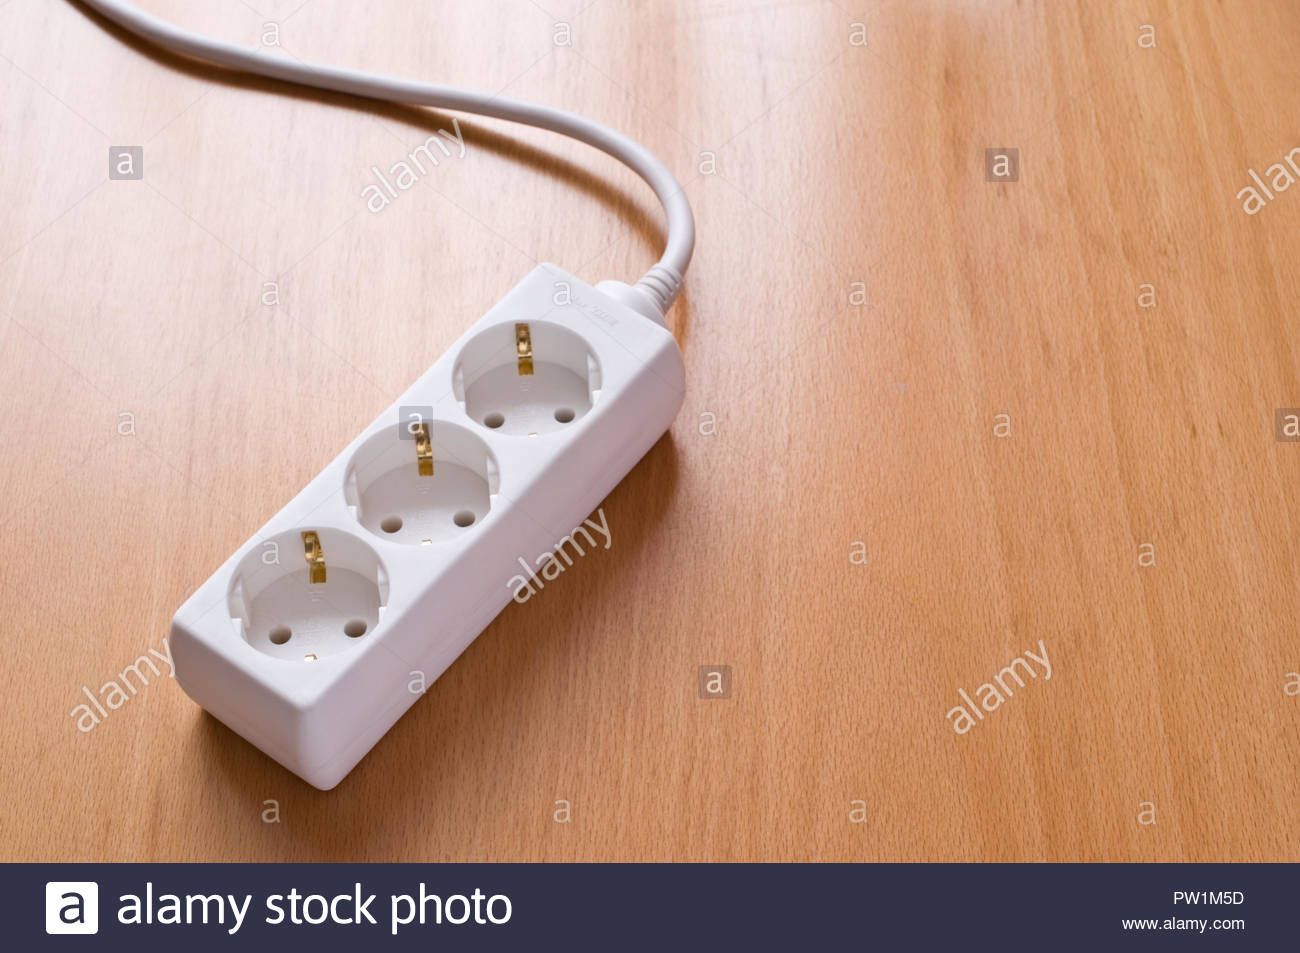 Multiple Socket Outlet On Wooden Floor Stock Photo 221928601 Alamy